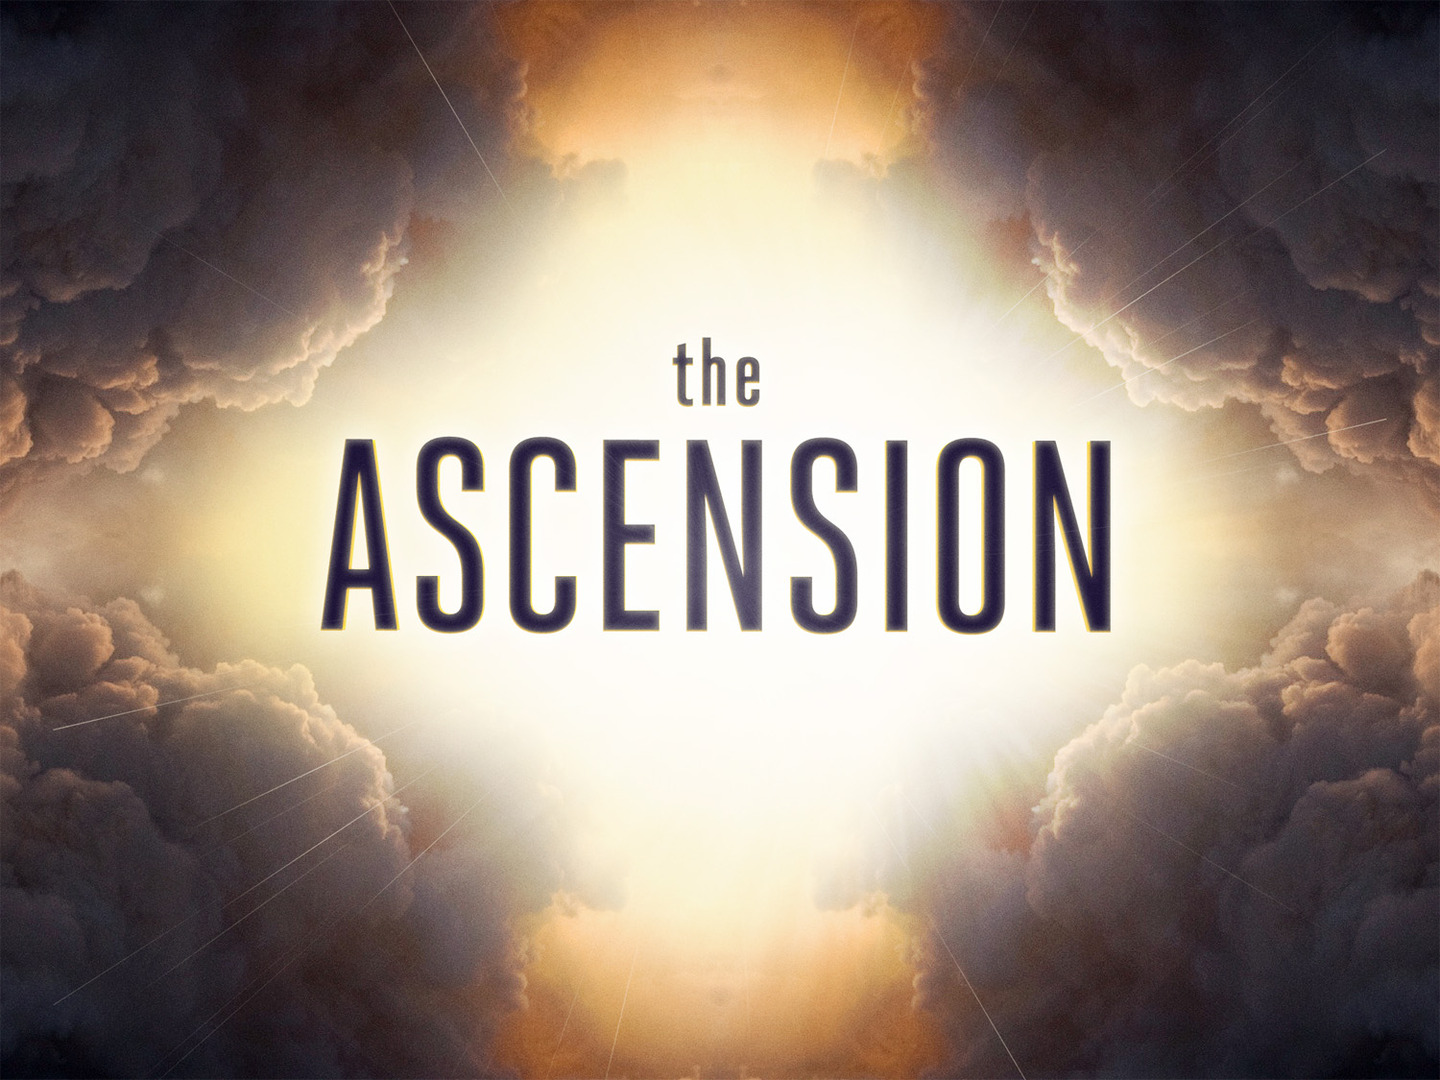 the_ascension-title-2-Standard 4x3